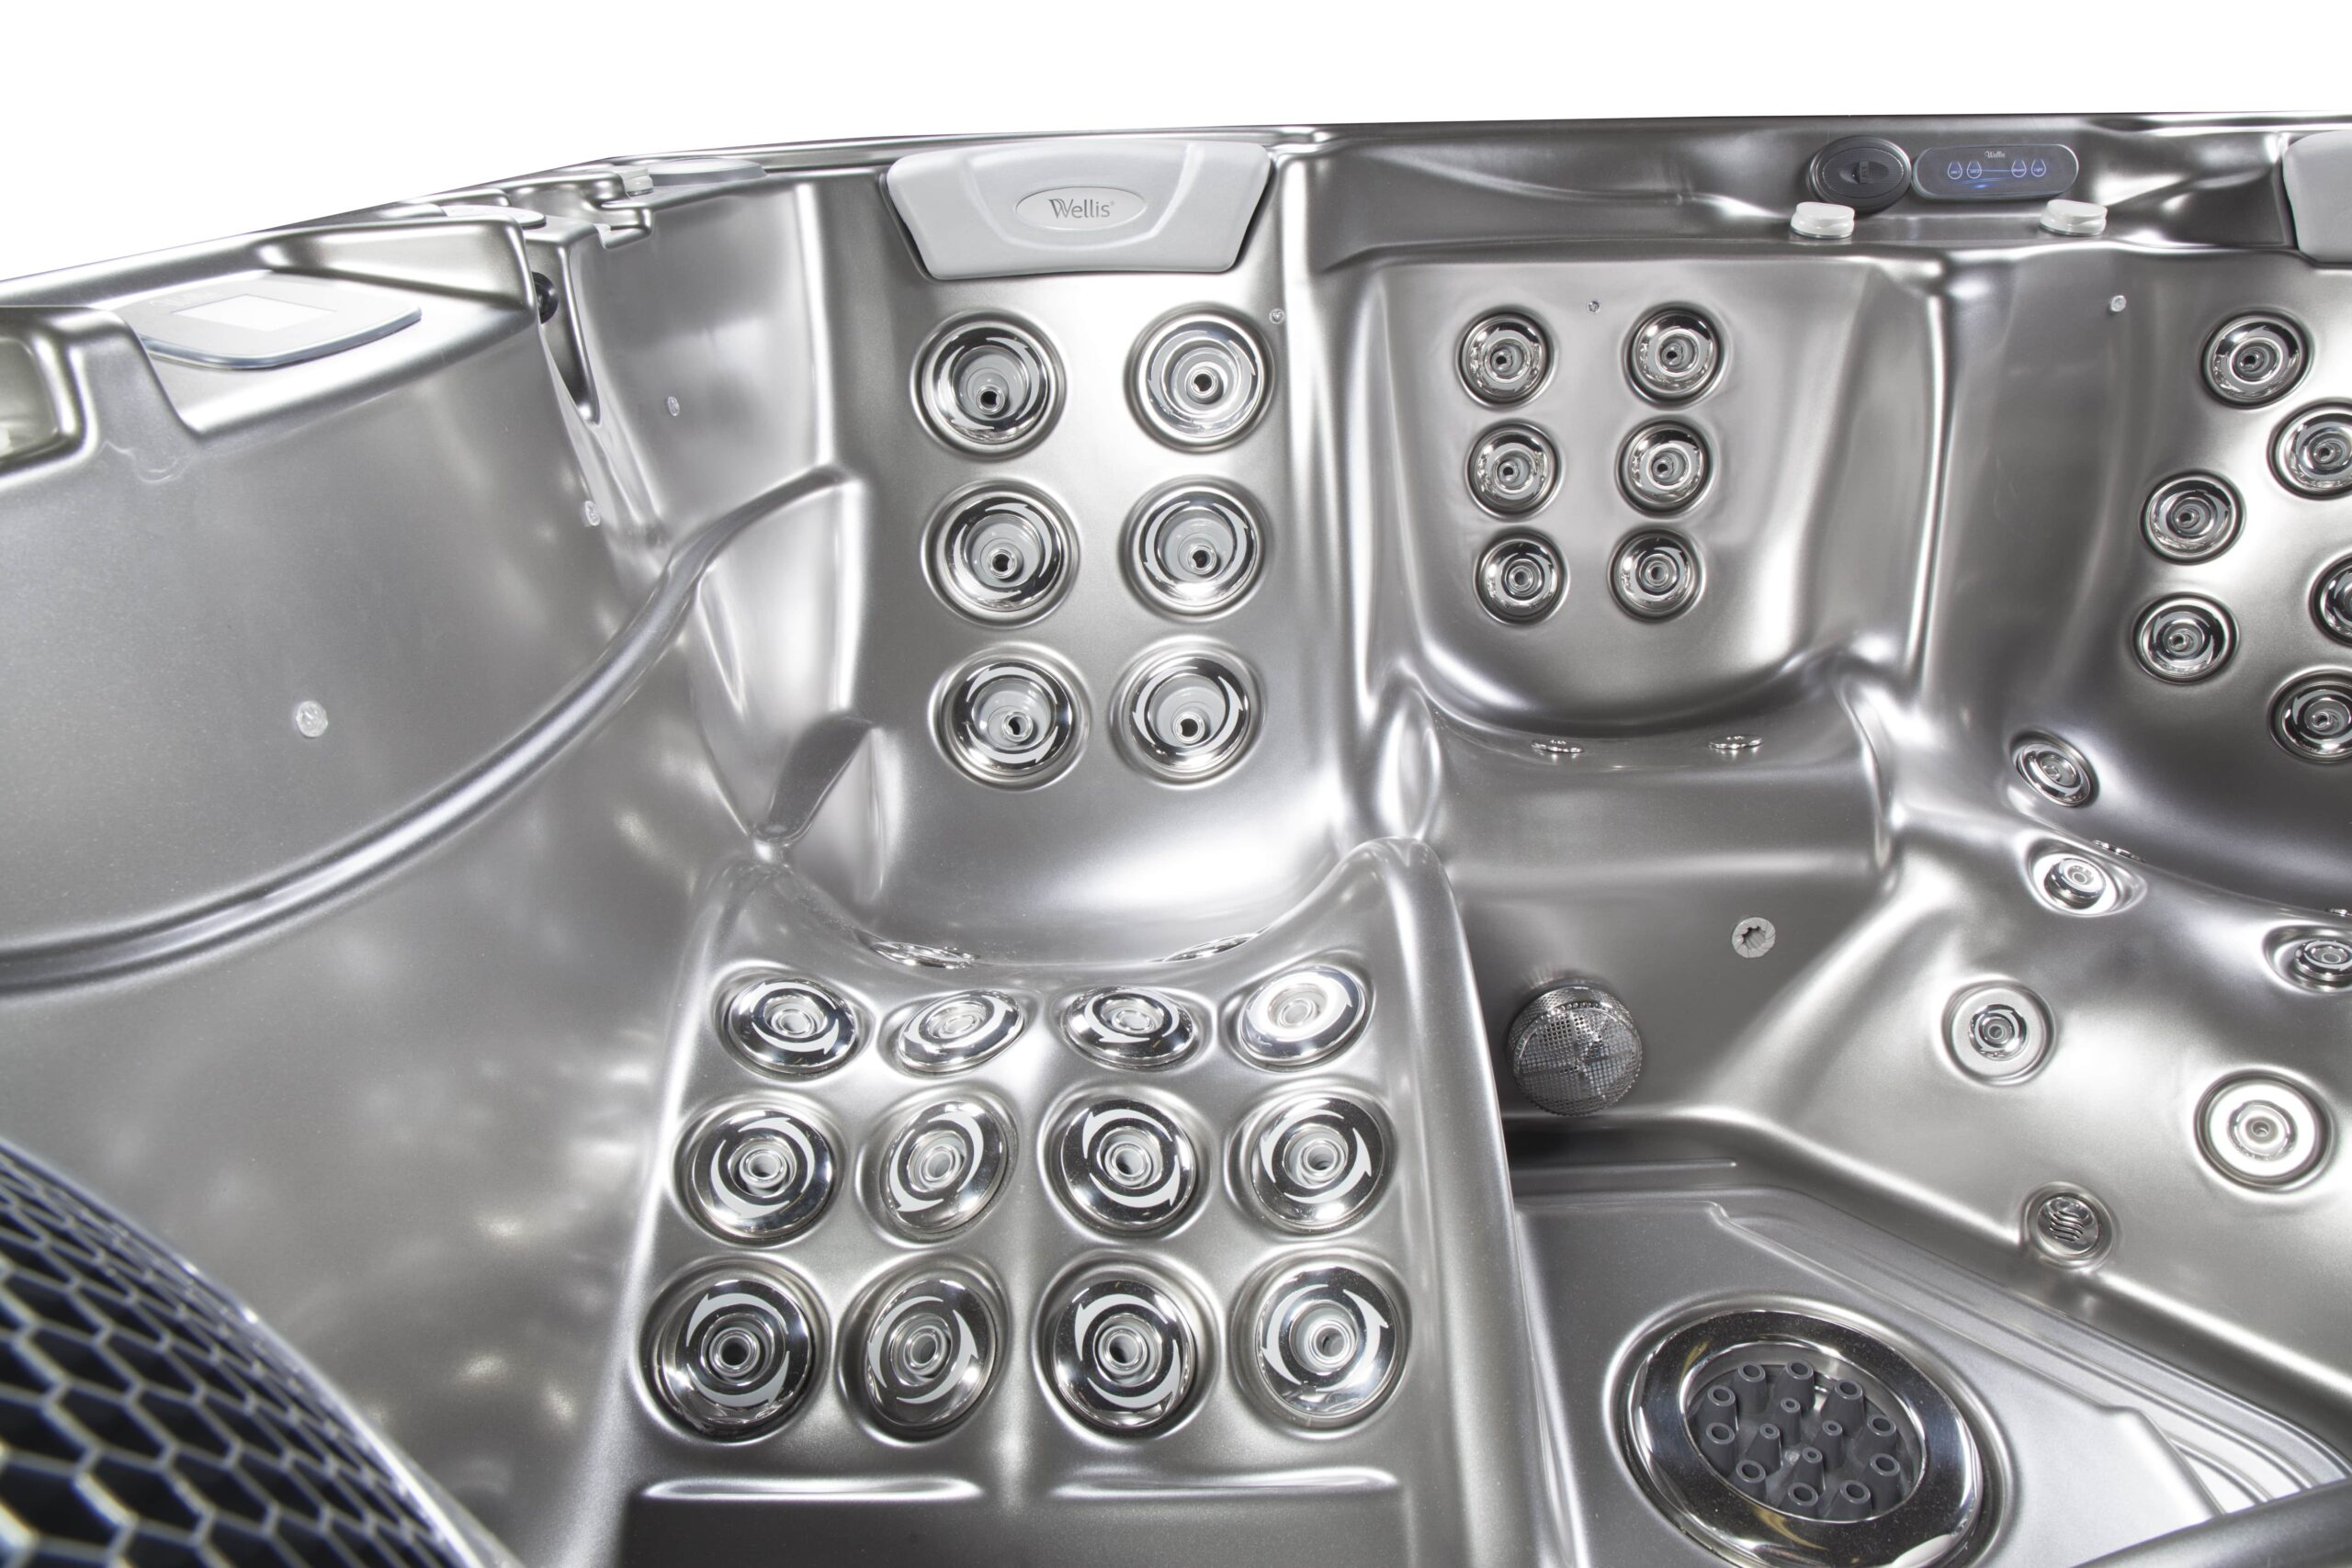 Hydrotherapy hot tub jets for joint pain